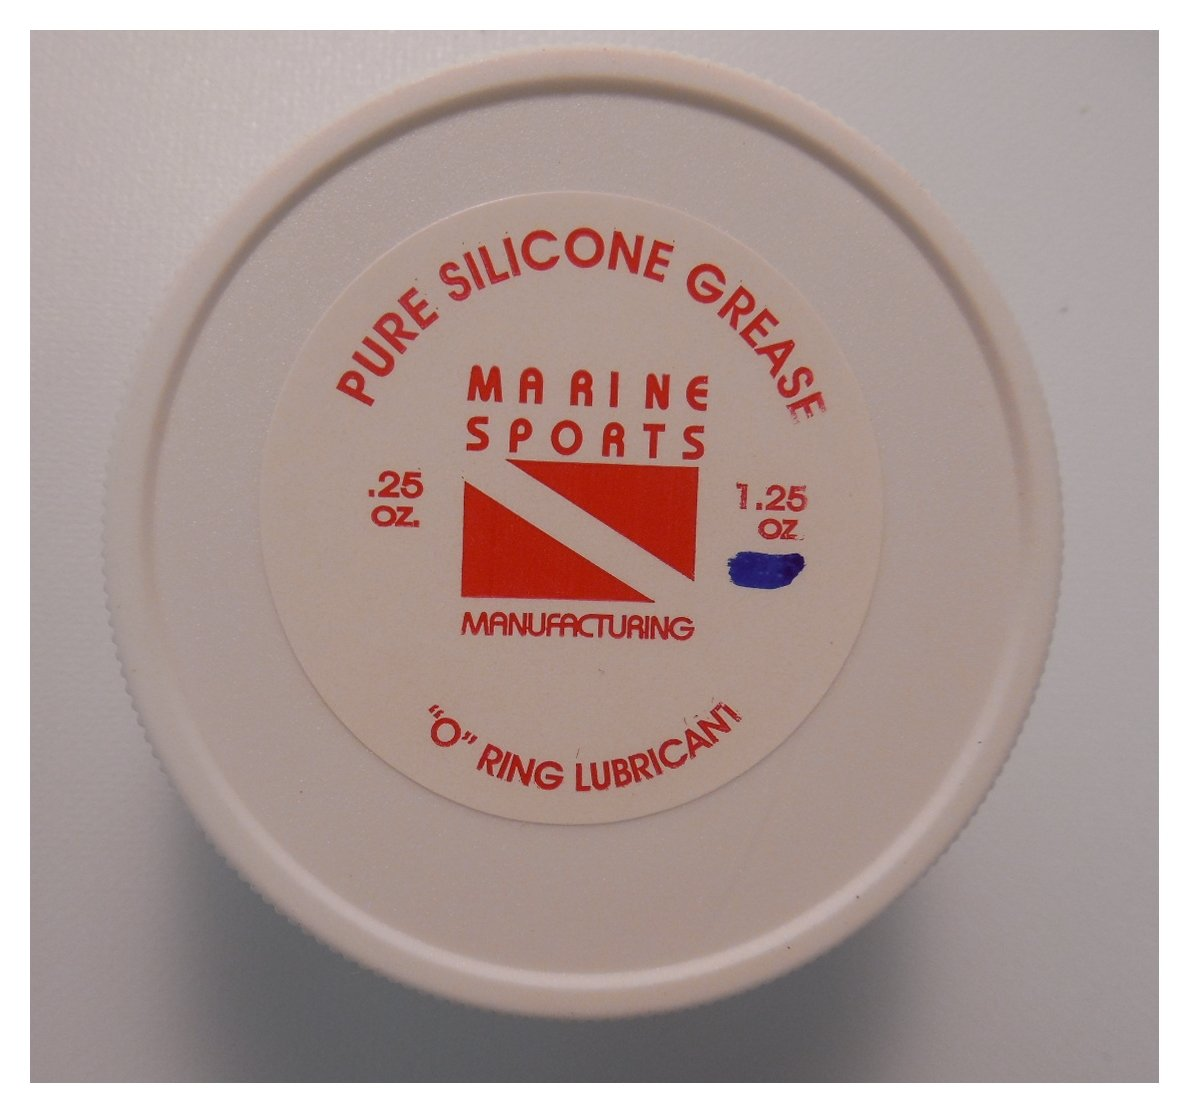 Marine Sports Manufacturing Silicone Grease 1.25 oz